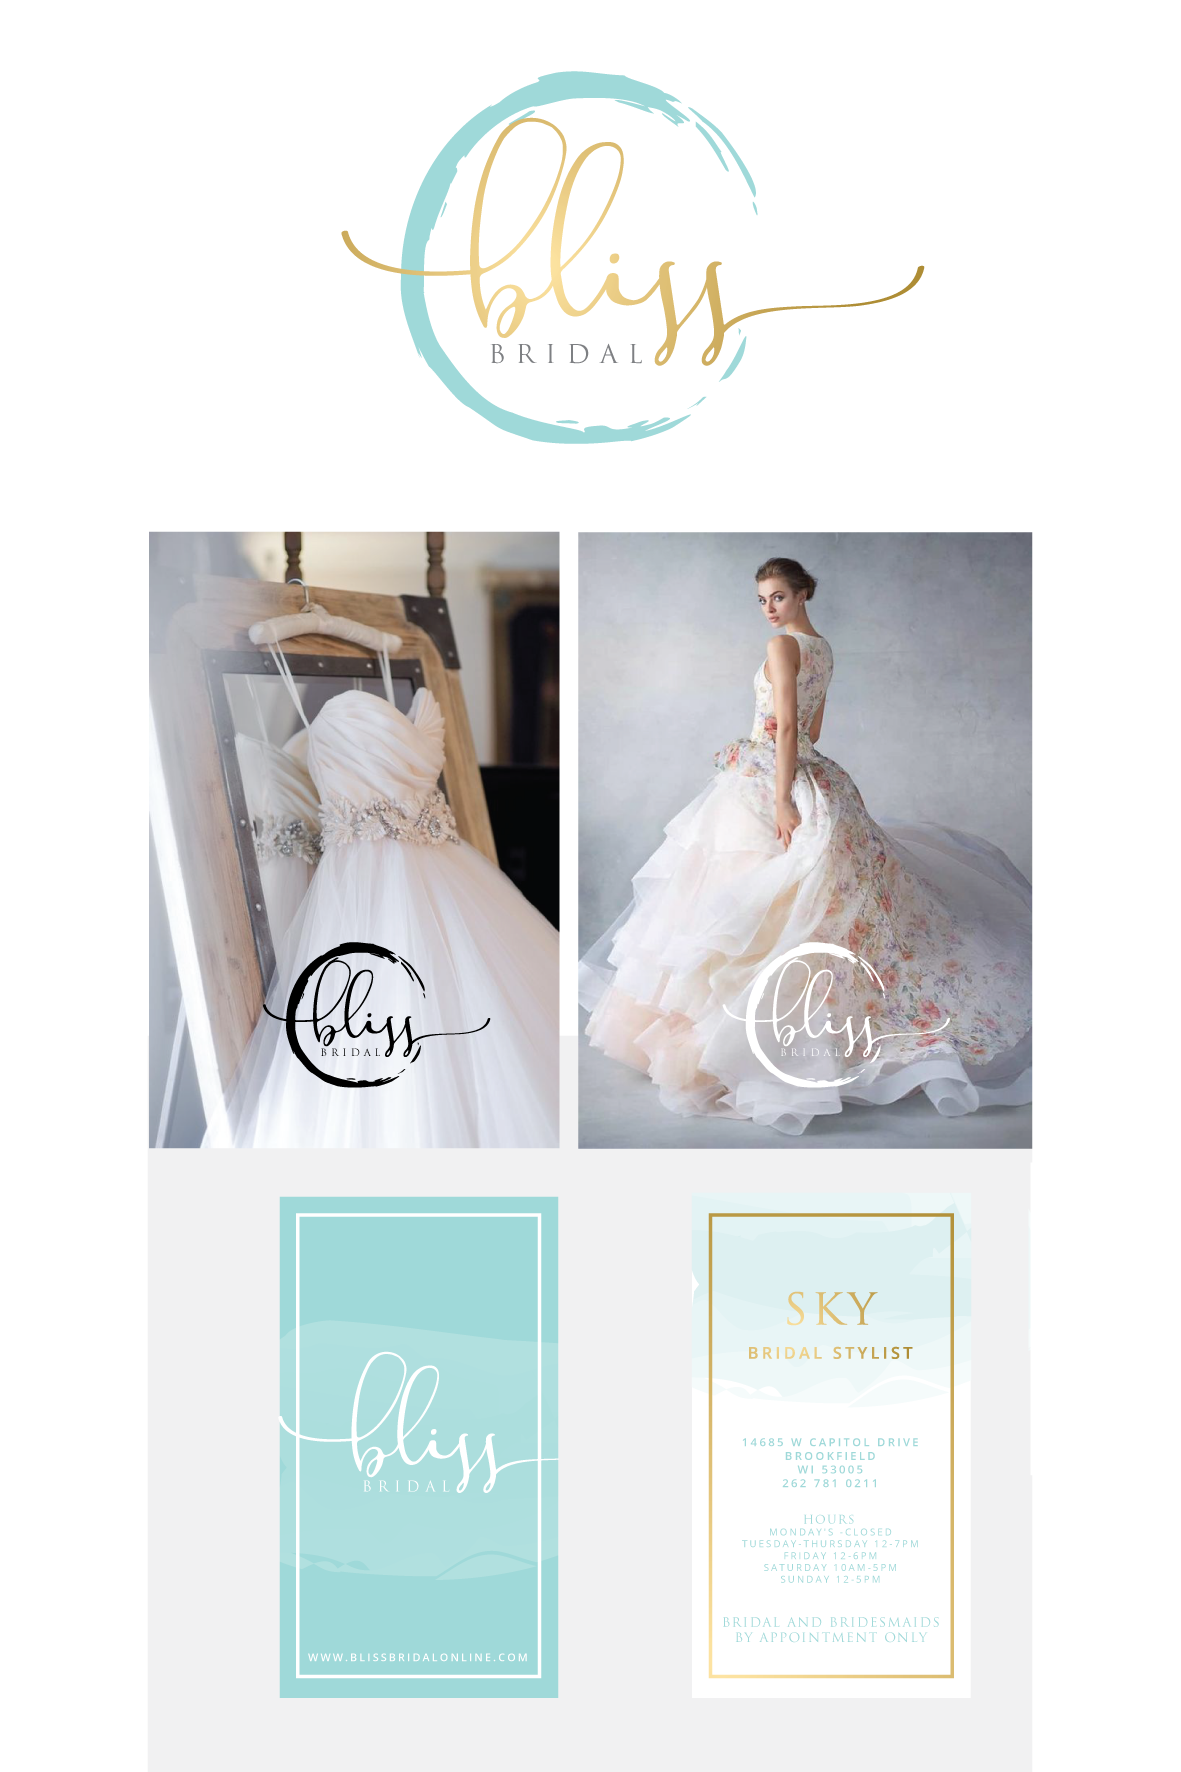 Designs Create A Brand For High End Designer Bridal Boutique In The Midwest Business Logosbusiness Card